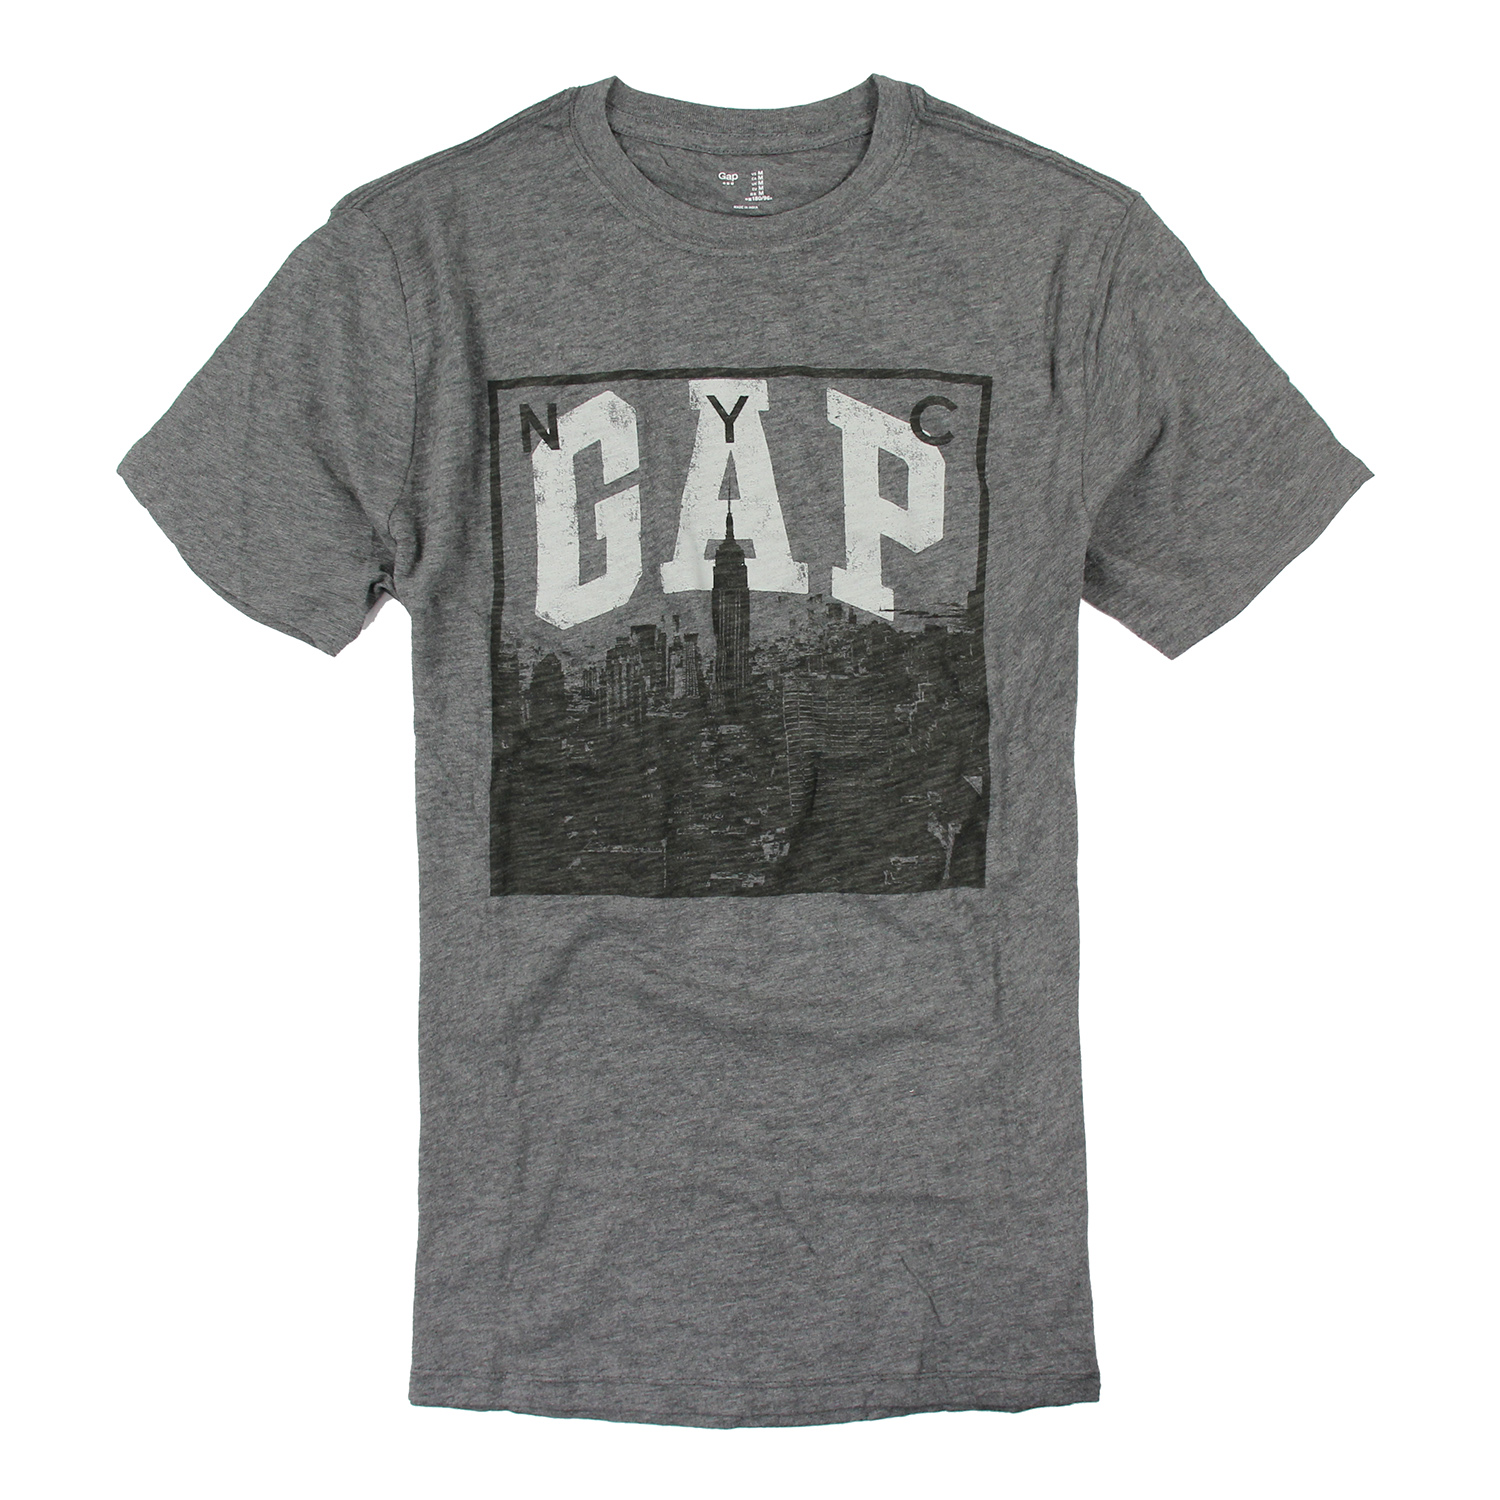 Gap t t shirt nyc m f009 for Gap usa t shirt